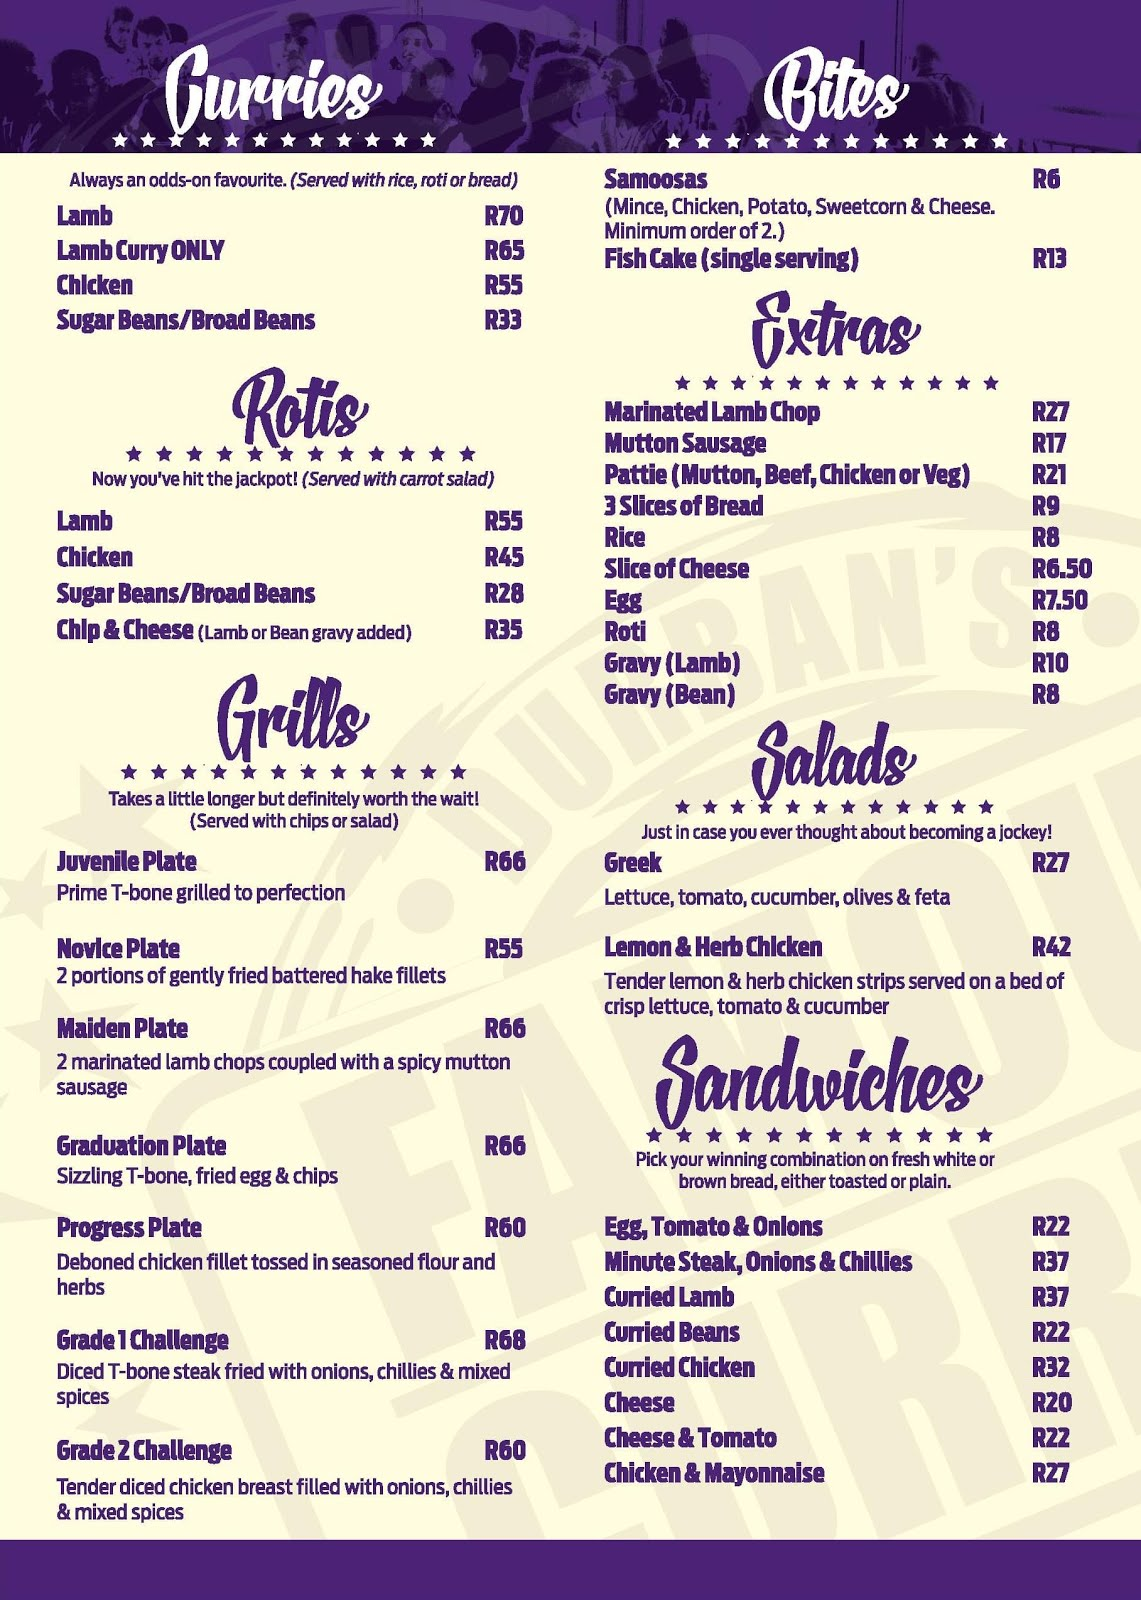 Hollywood Bunny Bar Menu - Page 2 - Curries - Rotis - Grills - Bites - Extras - Salads - Sandwiches